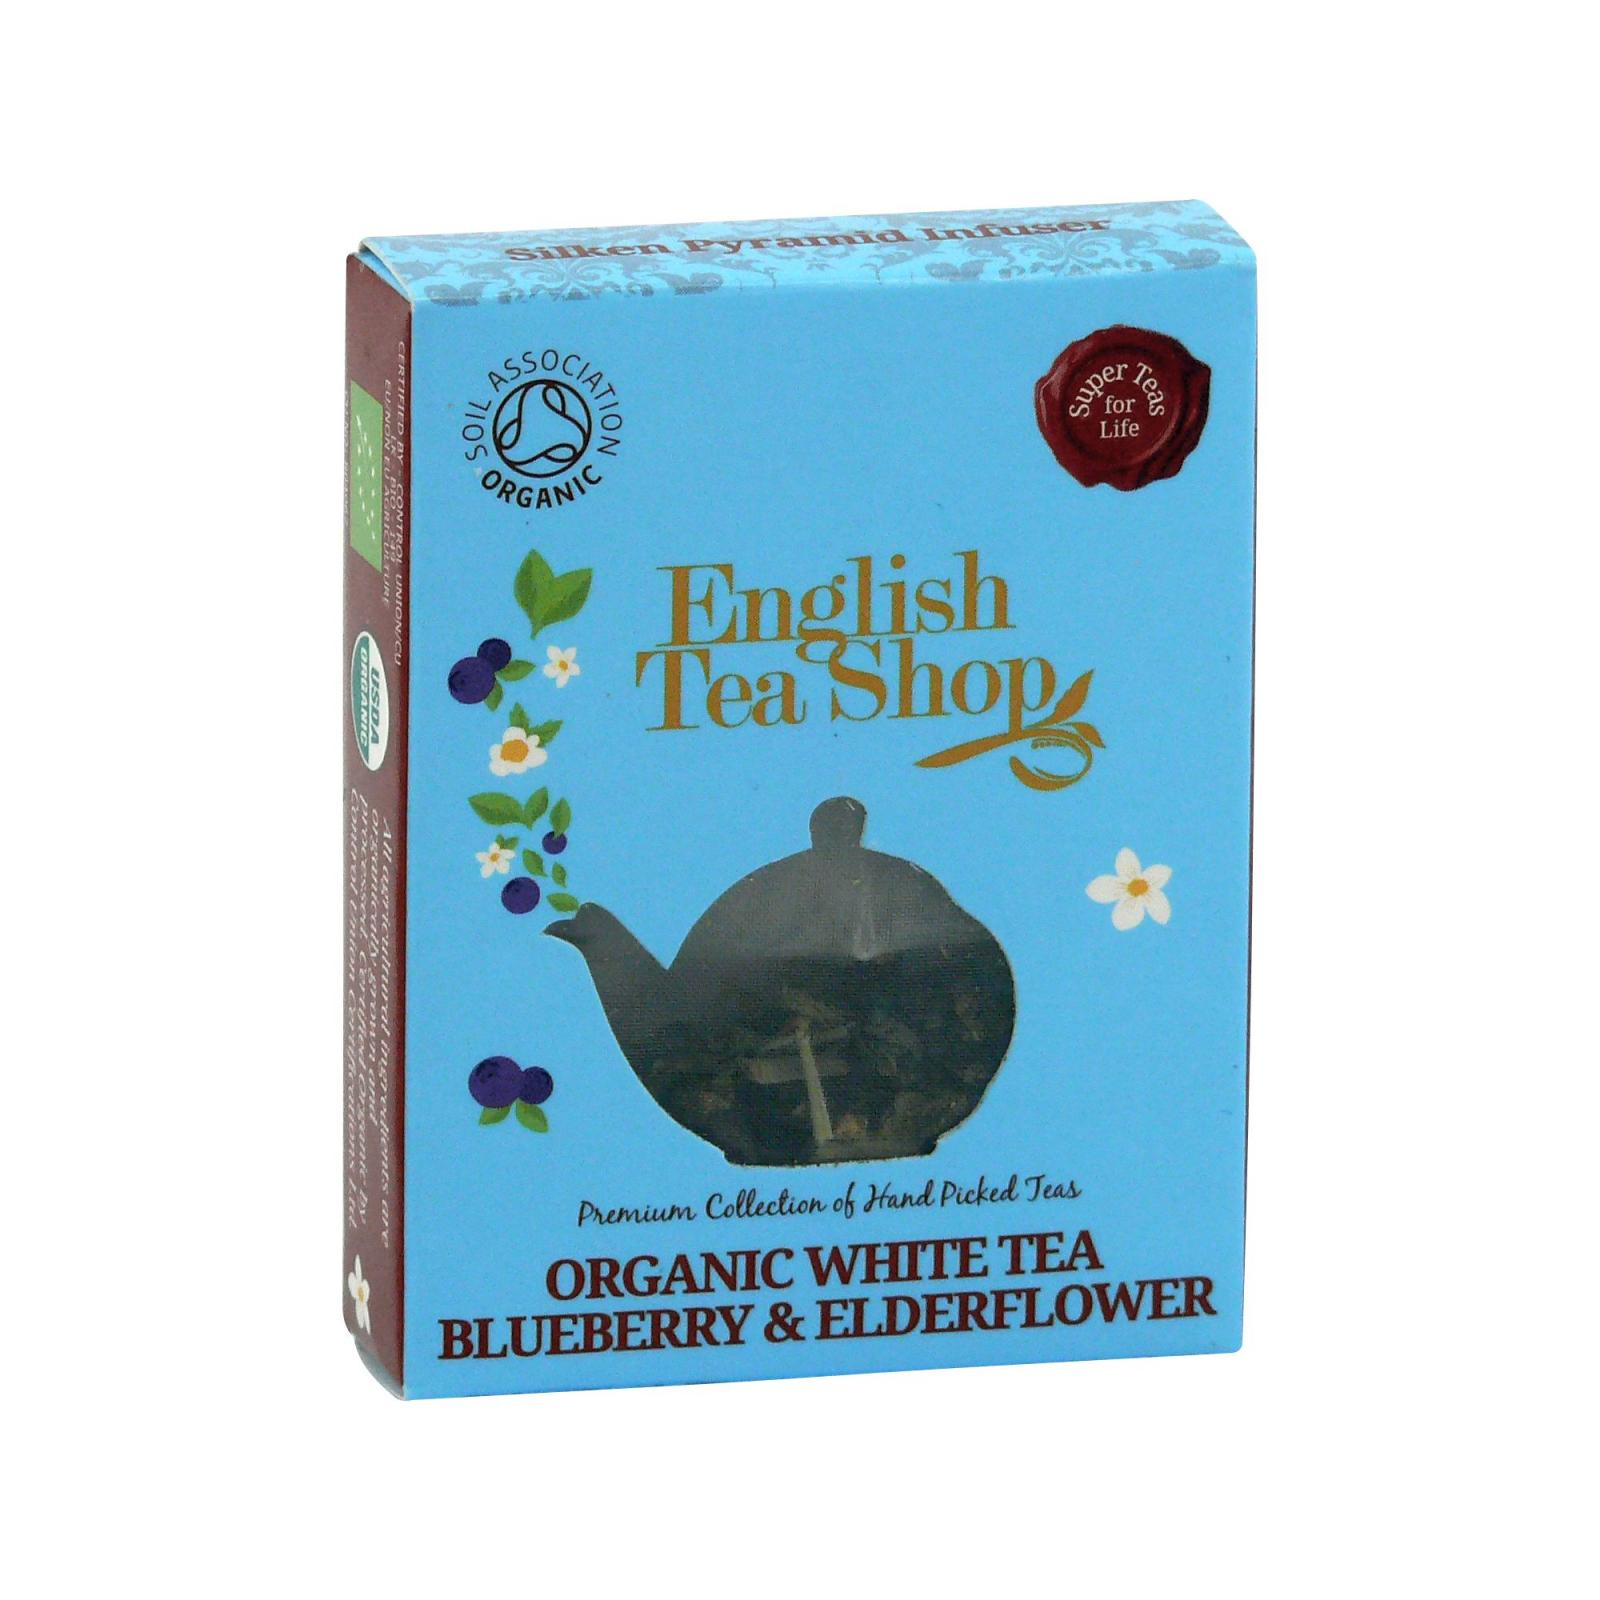 English Tea Shop Bílý čaj borůvka a bezový květ 2 g, 1 ks